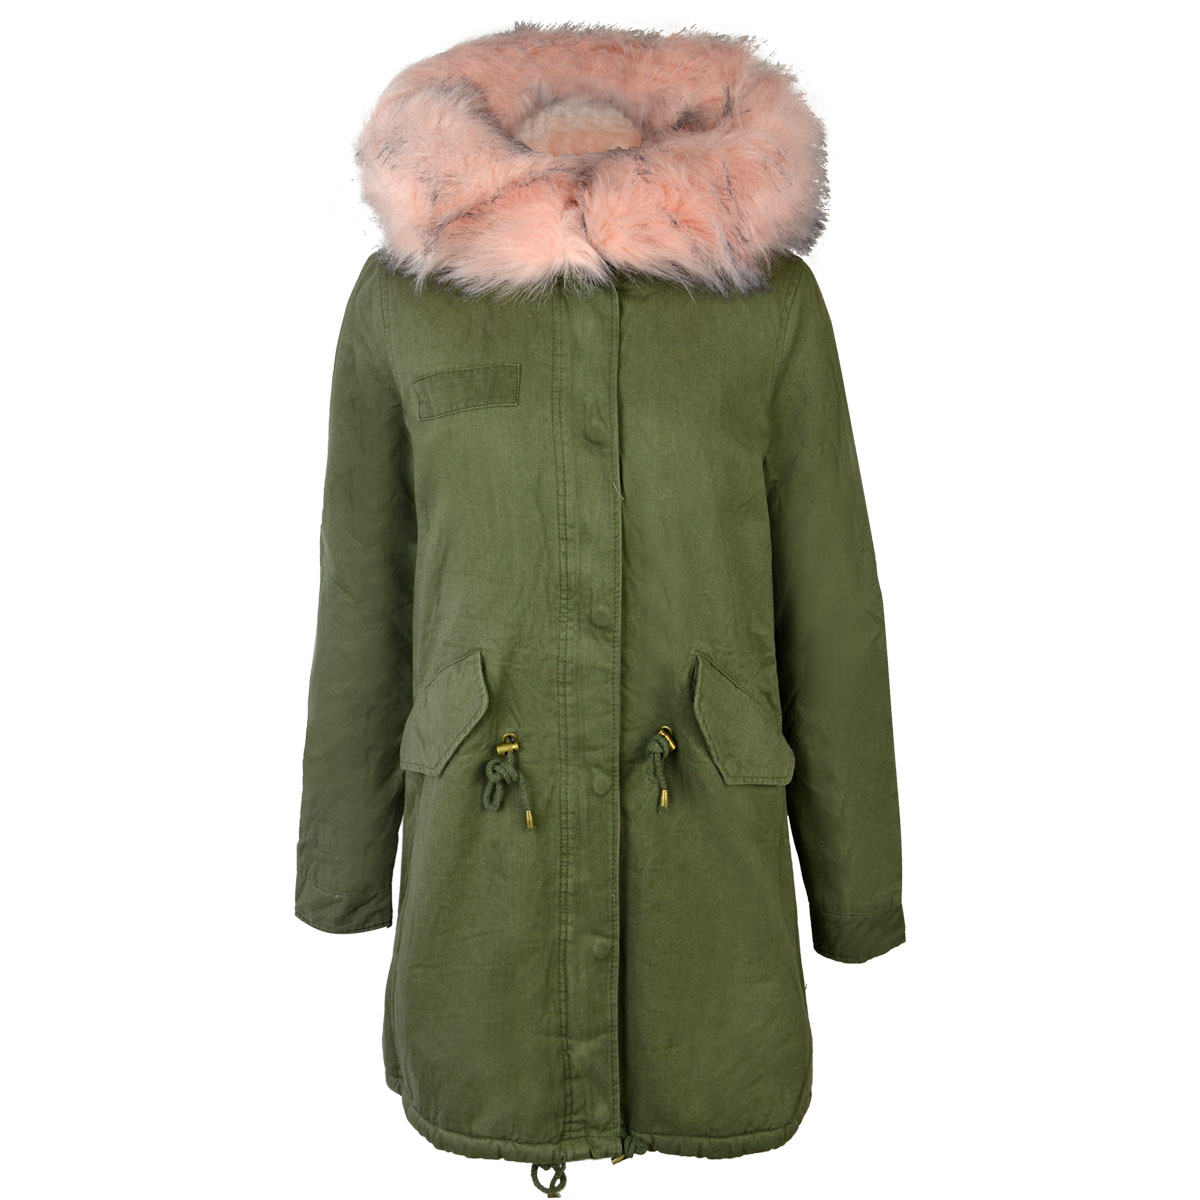 Ladies Womens Khaki Green Jacket Parka Grafitti Punk Retro Faux ...